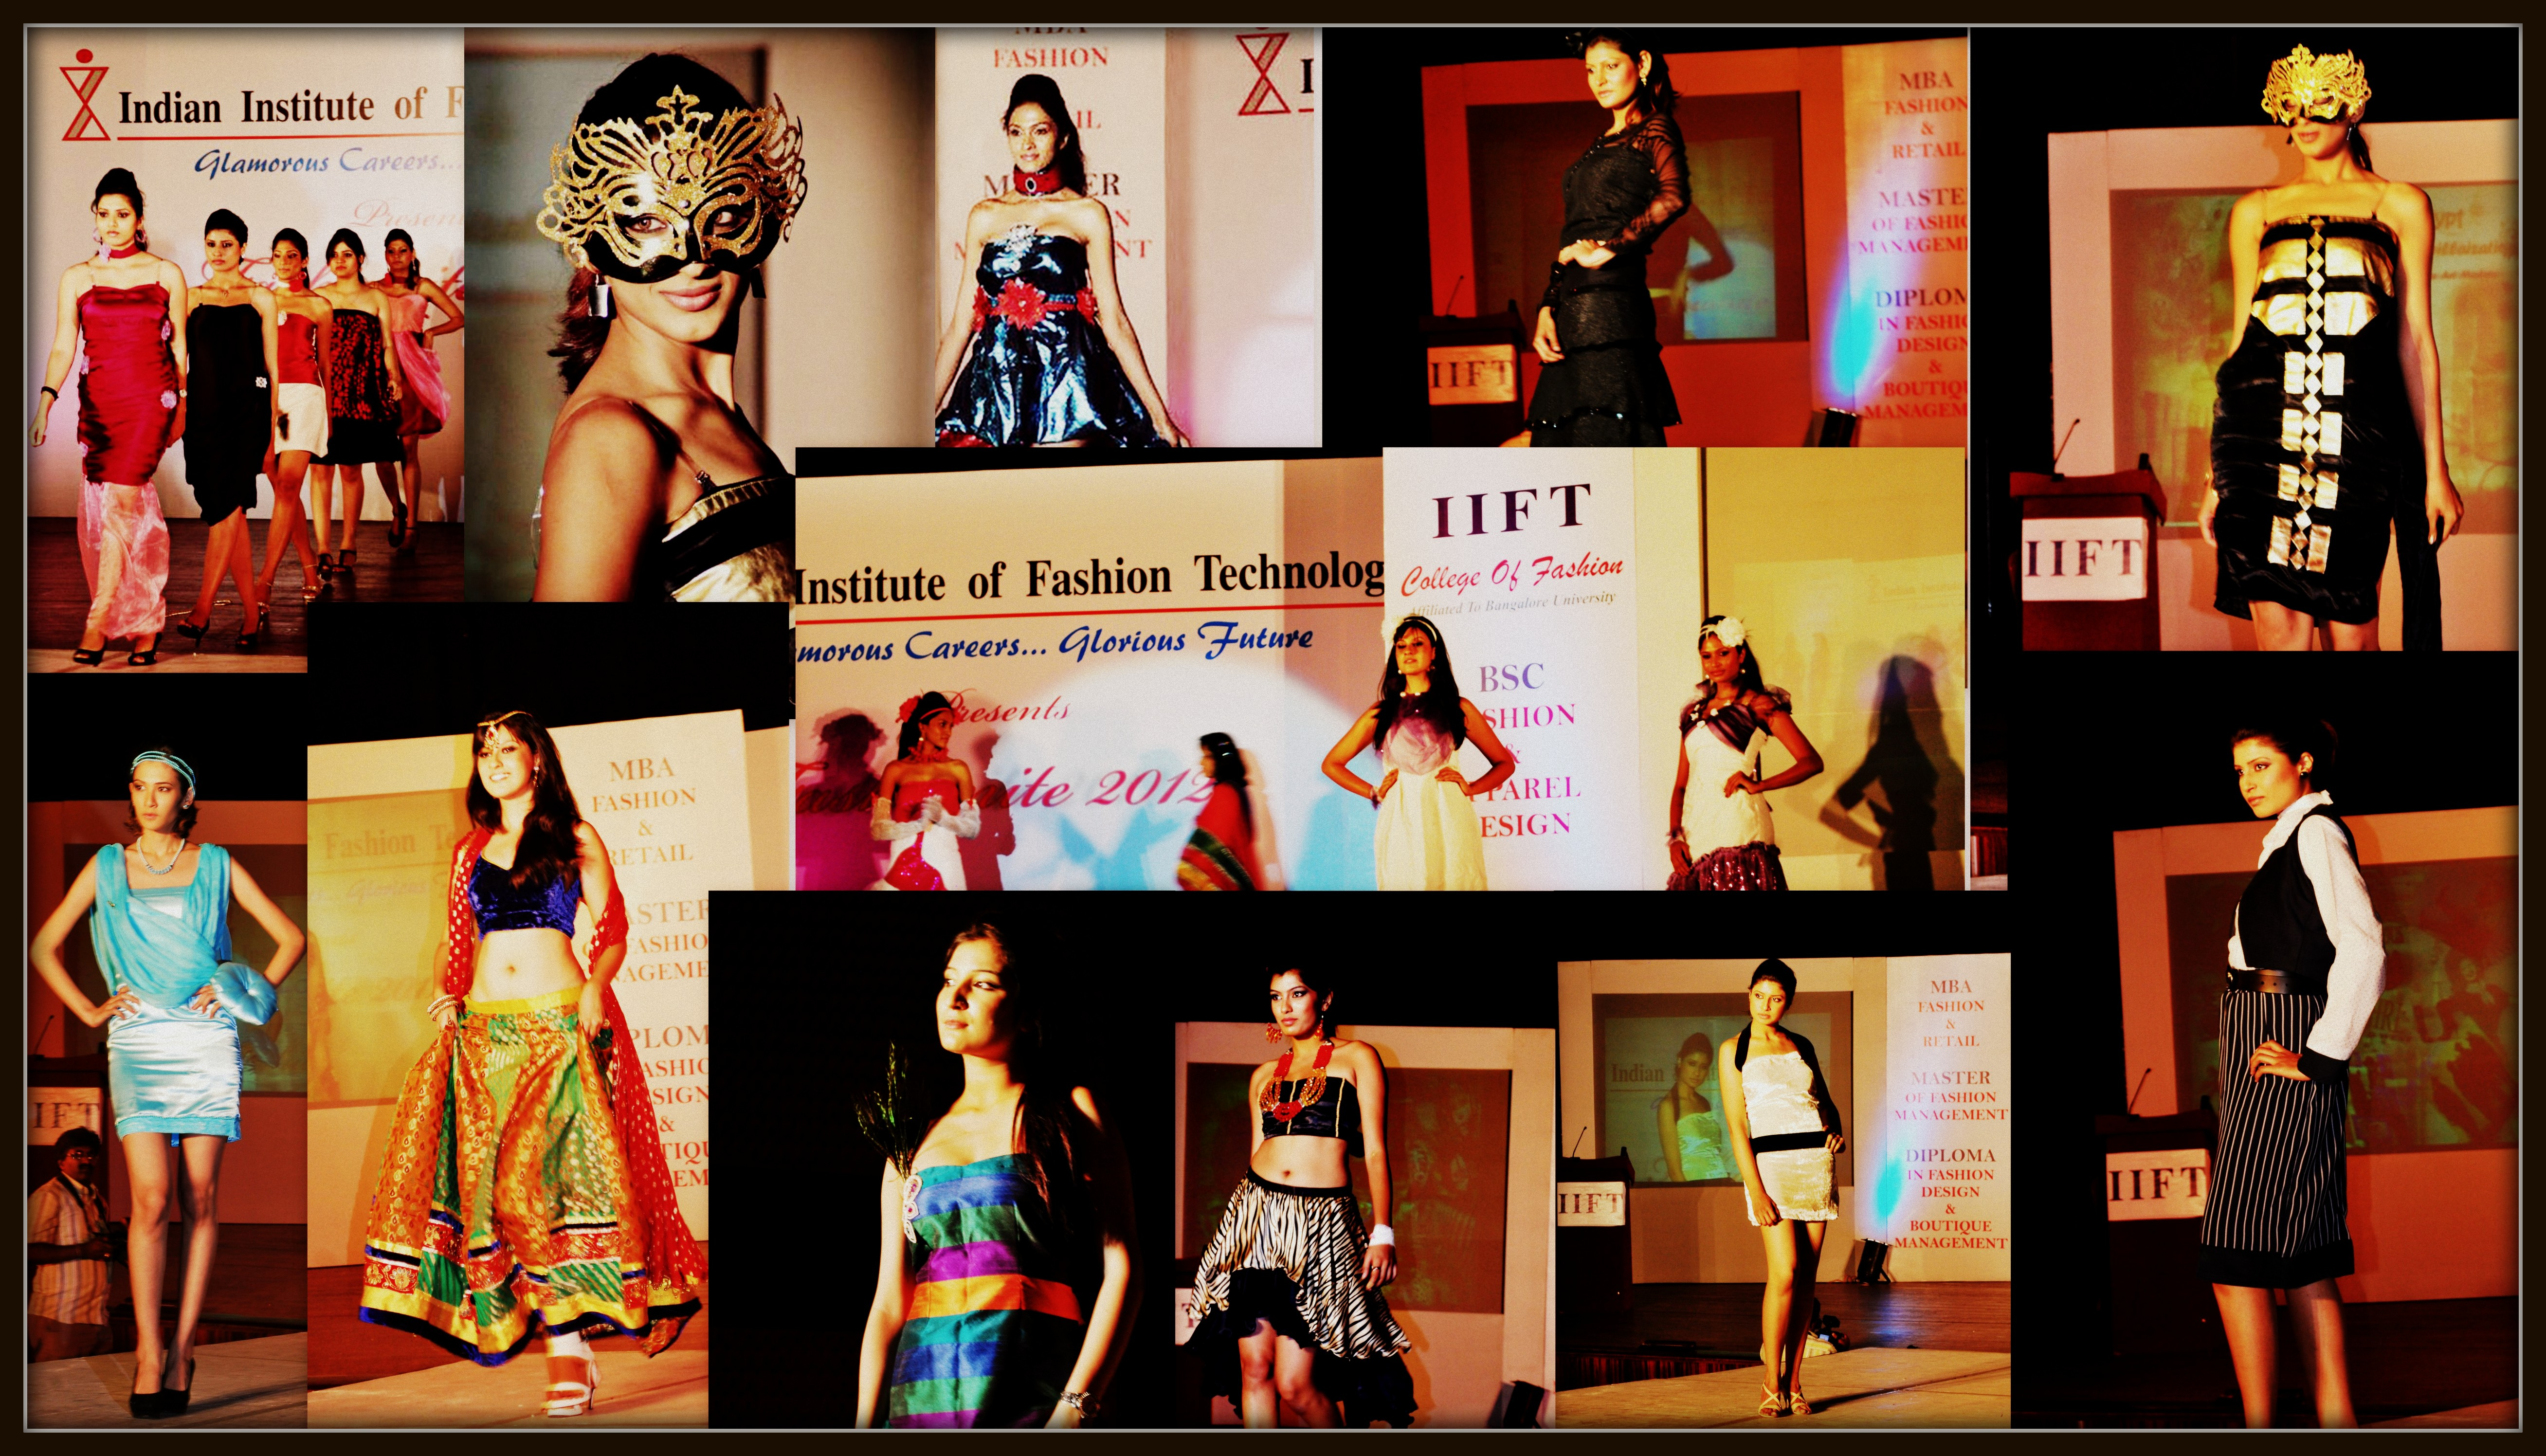 IIFD - Indian Institute Of Fashion 56